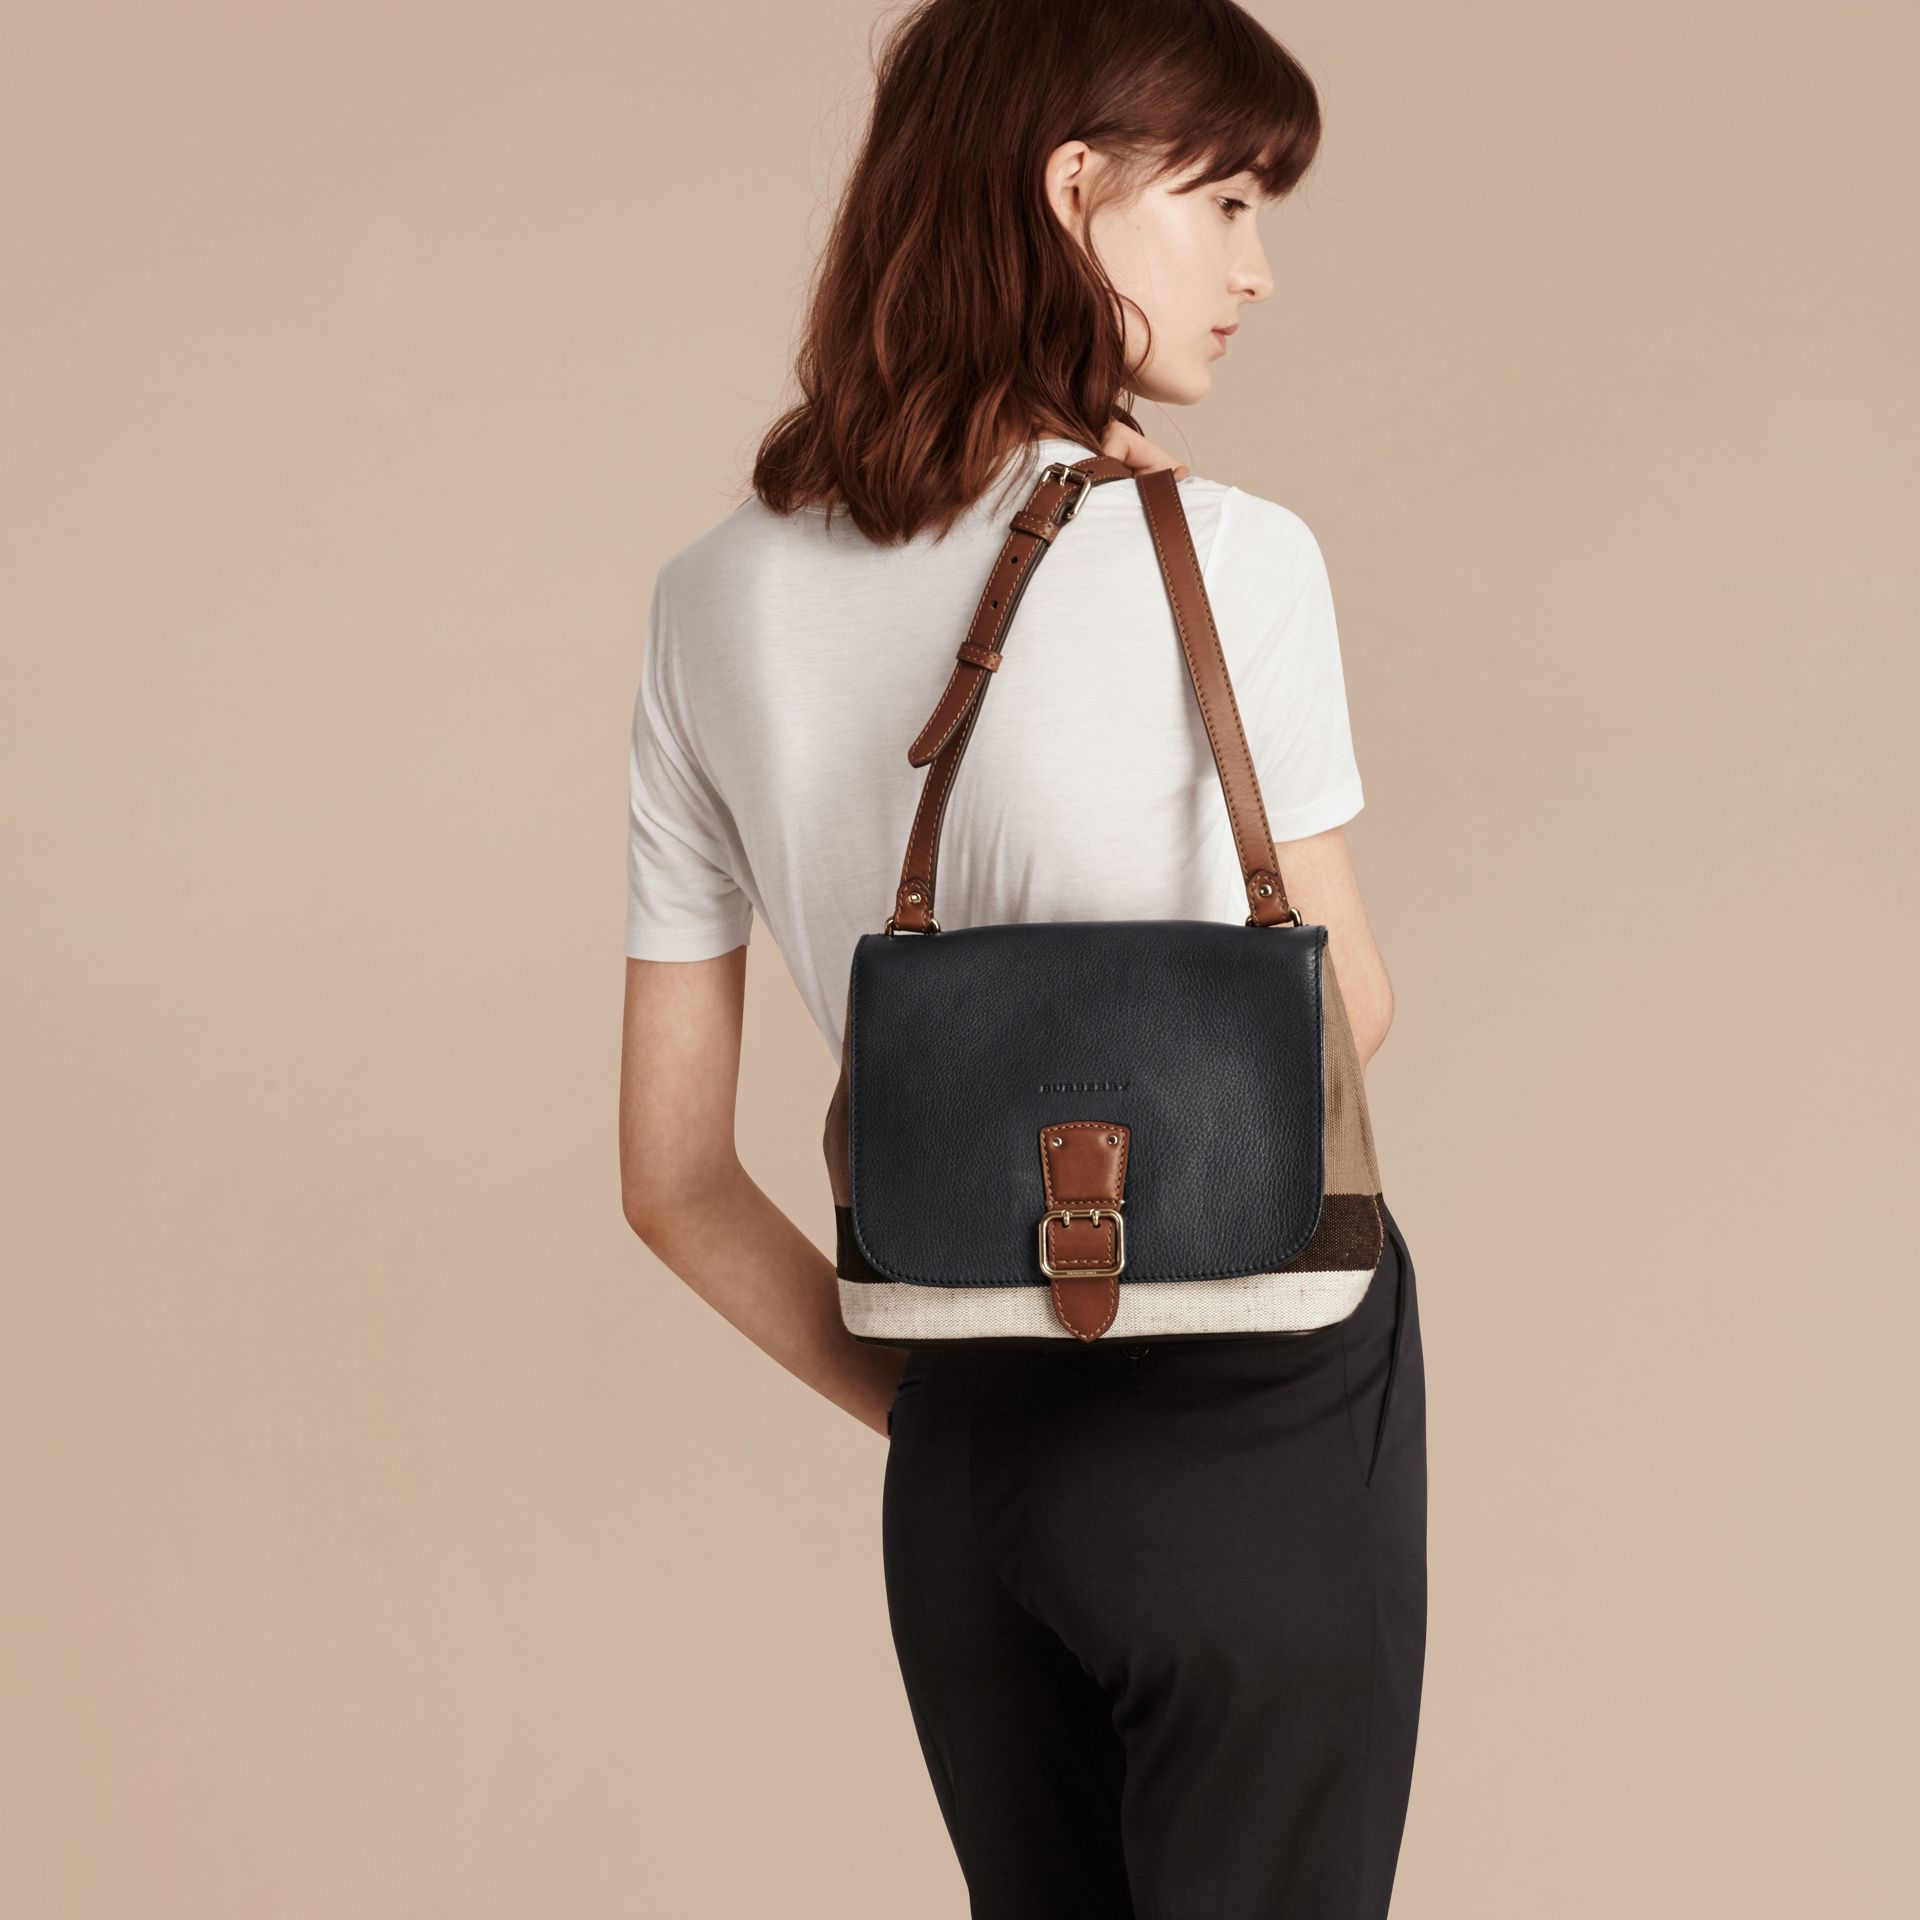 Black Canvas Check and Leather Crossbody Bag Black - gallery image 3